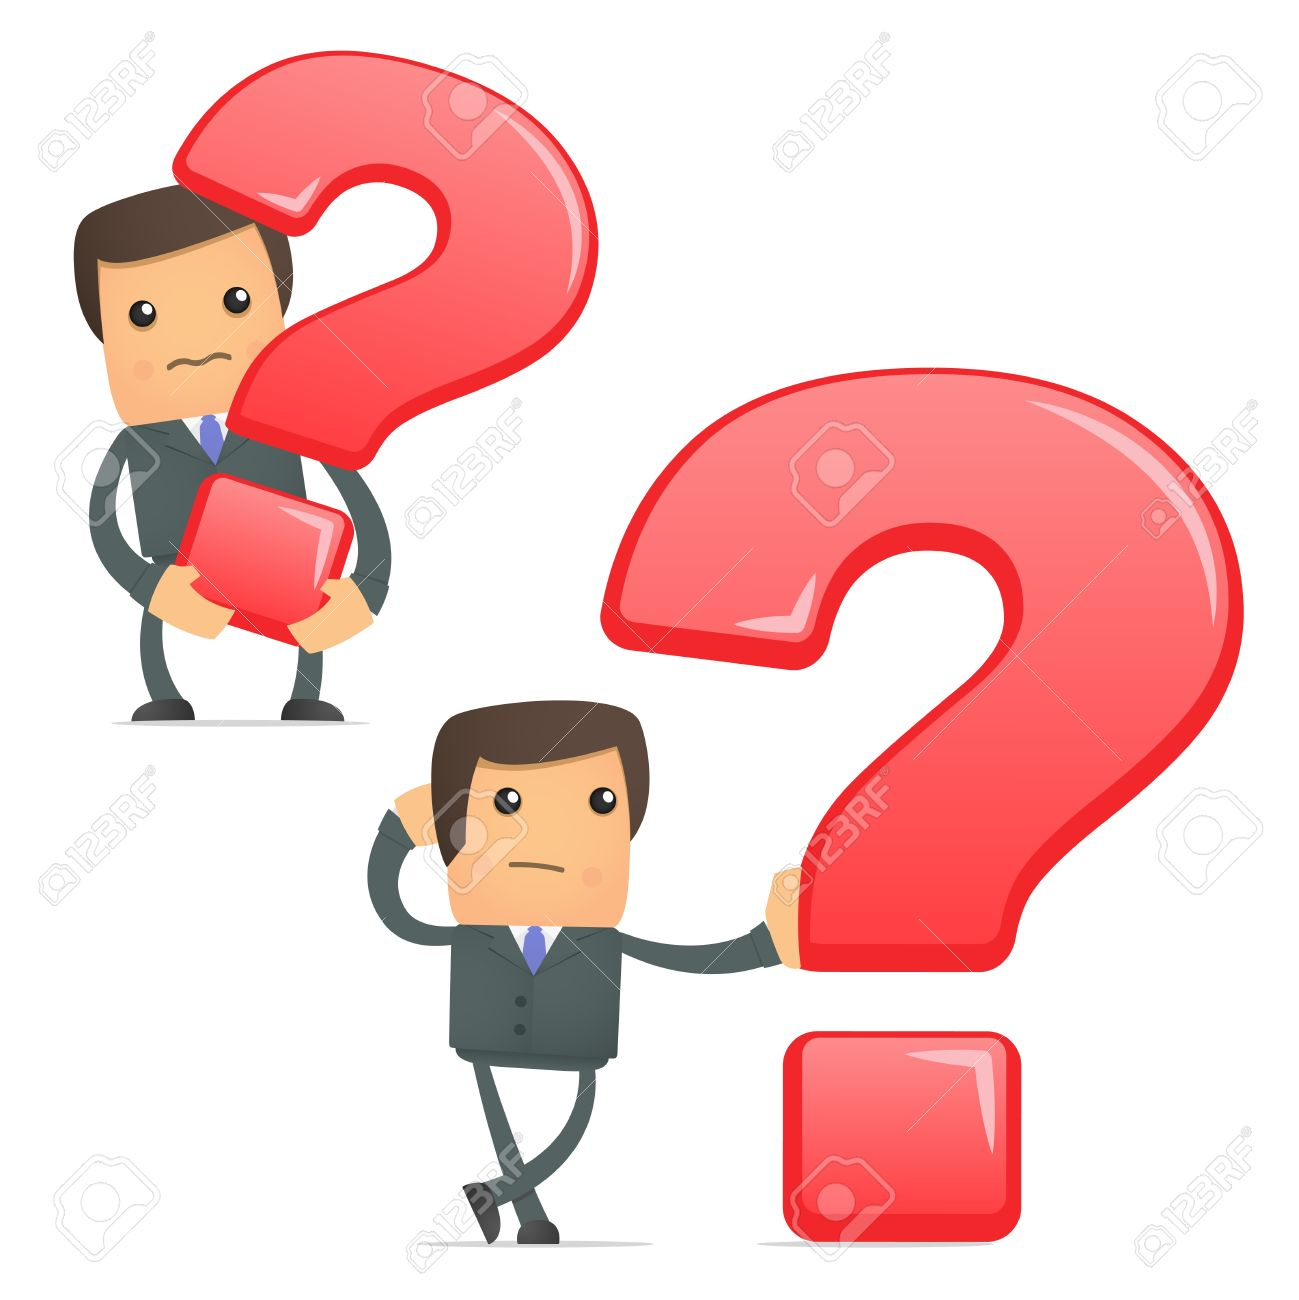 Pics photos clip art cartoon scientist with question mark stock - Asking Funny Cartoon Businessman With A Question Mark